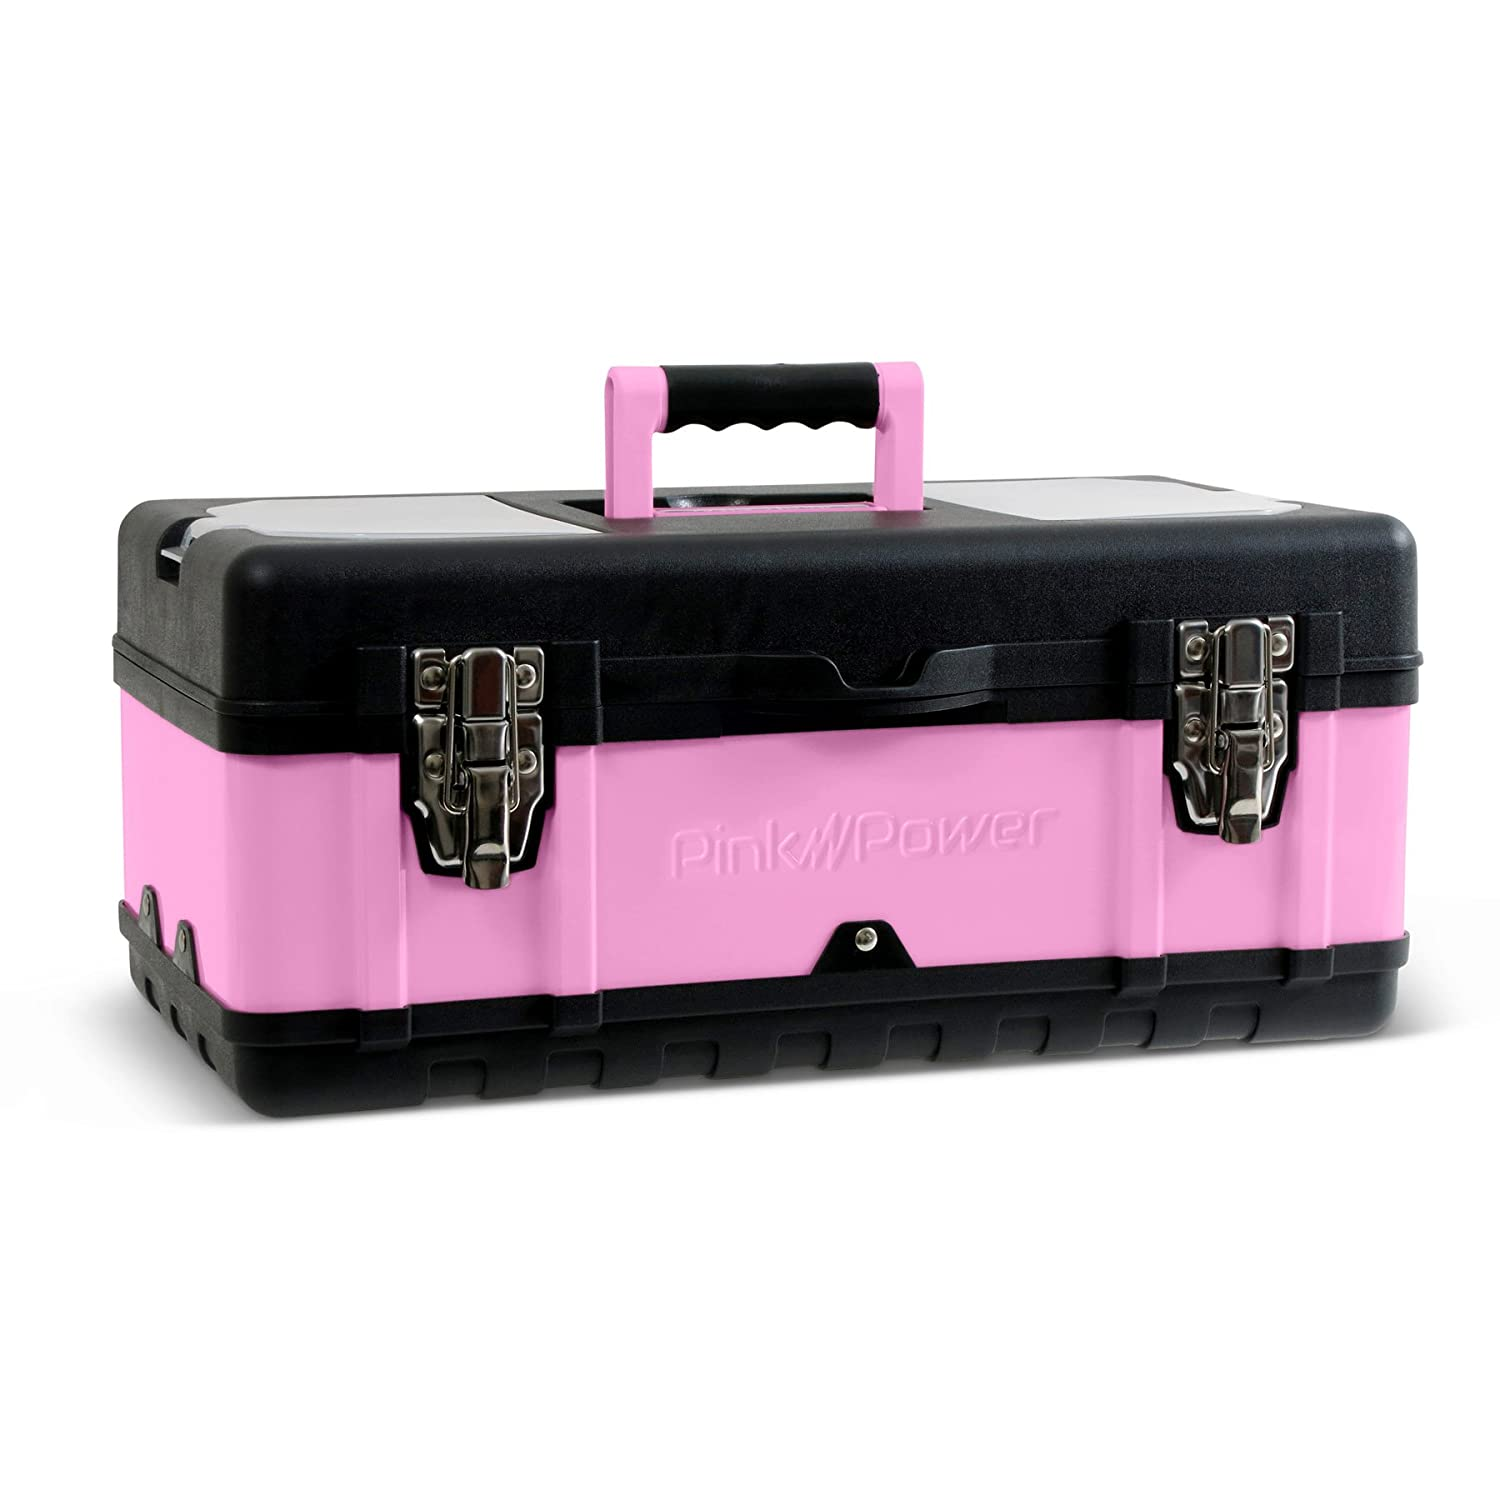 "Pink Power 18"" Portable Aluminum Tool Box for Tool or Craft Storage- Locking Lid and Extra Storage Compartments PP18TB"